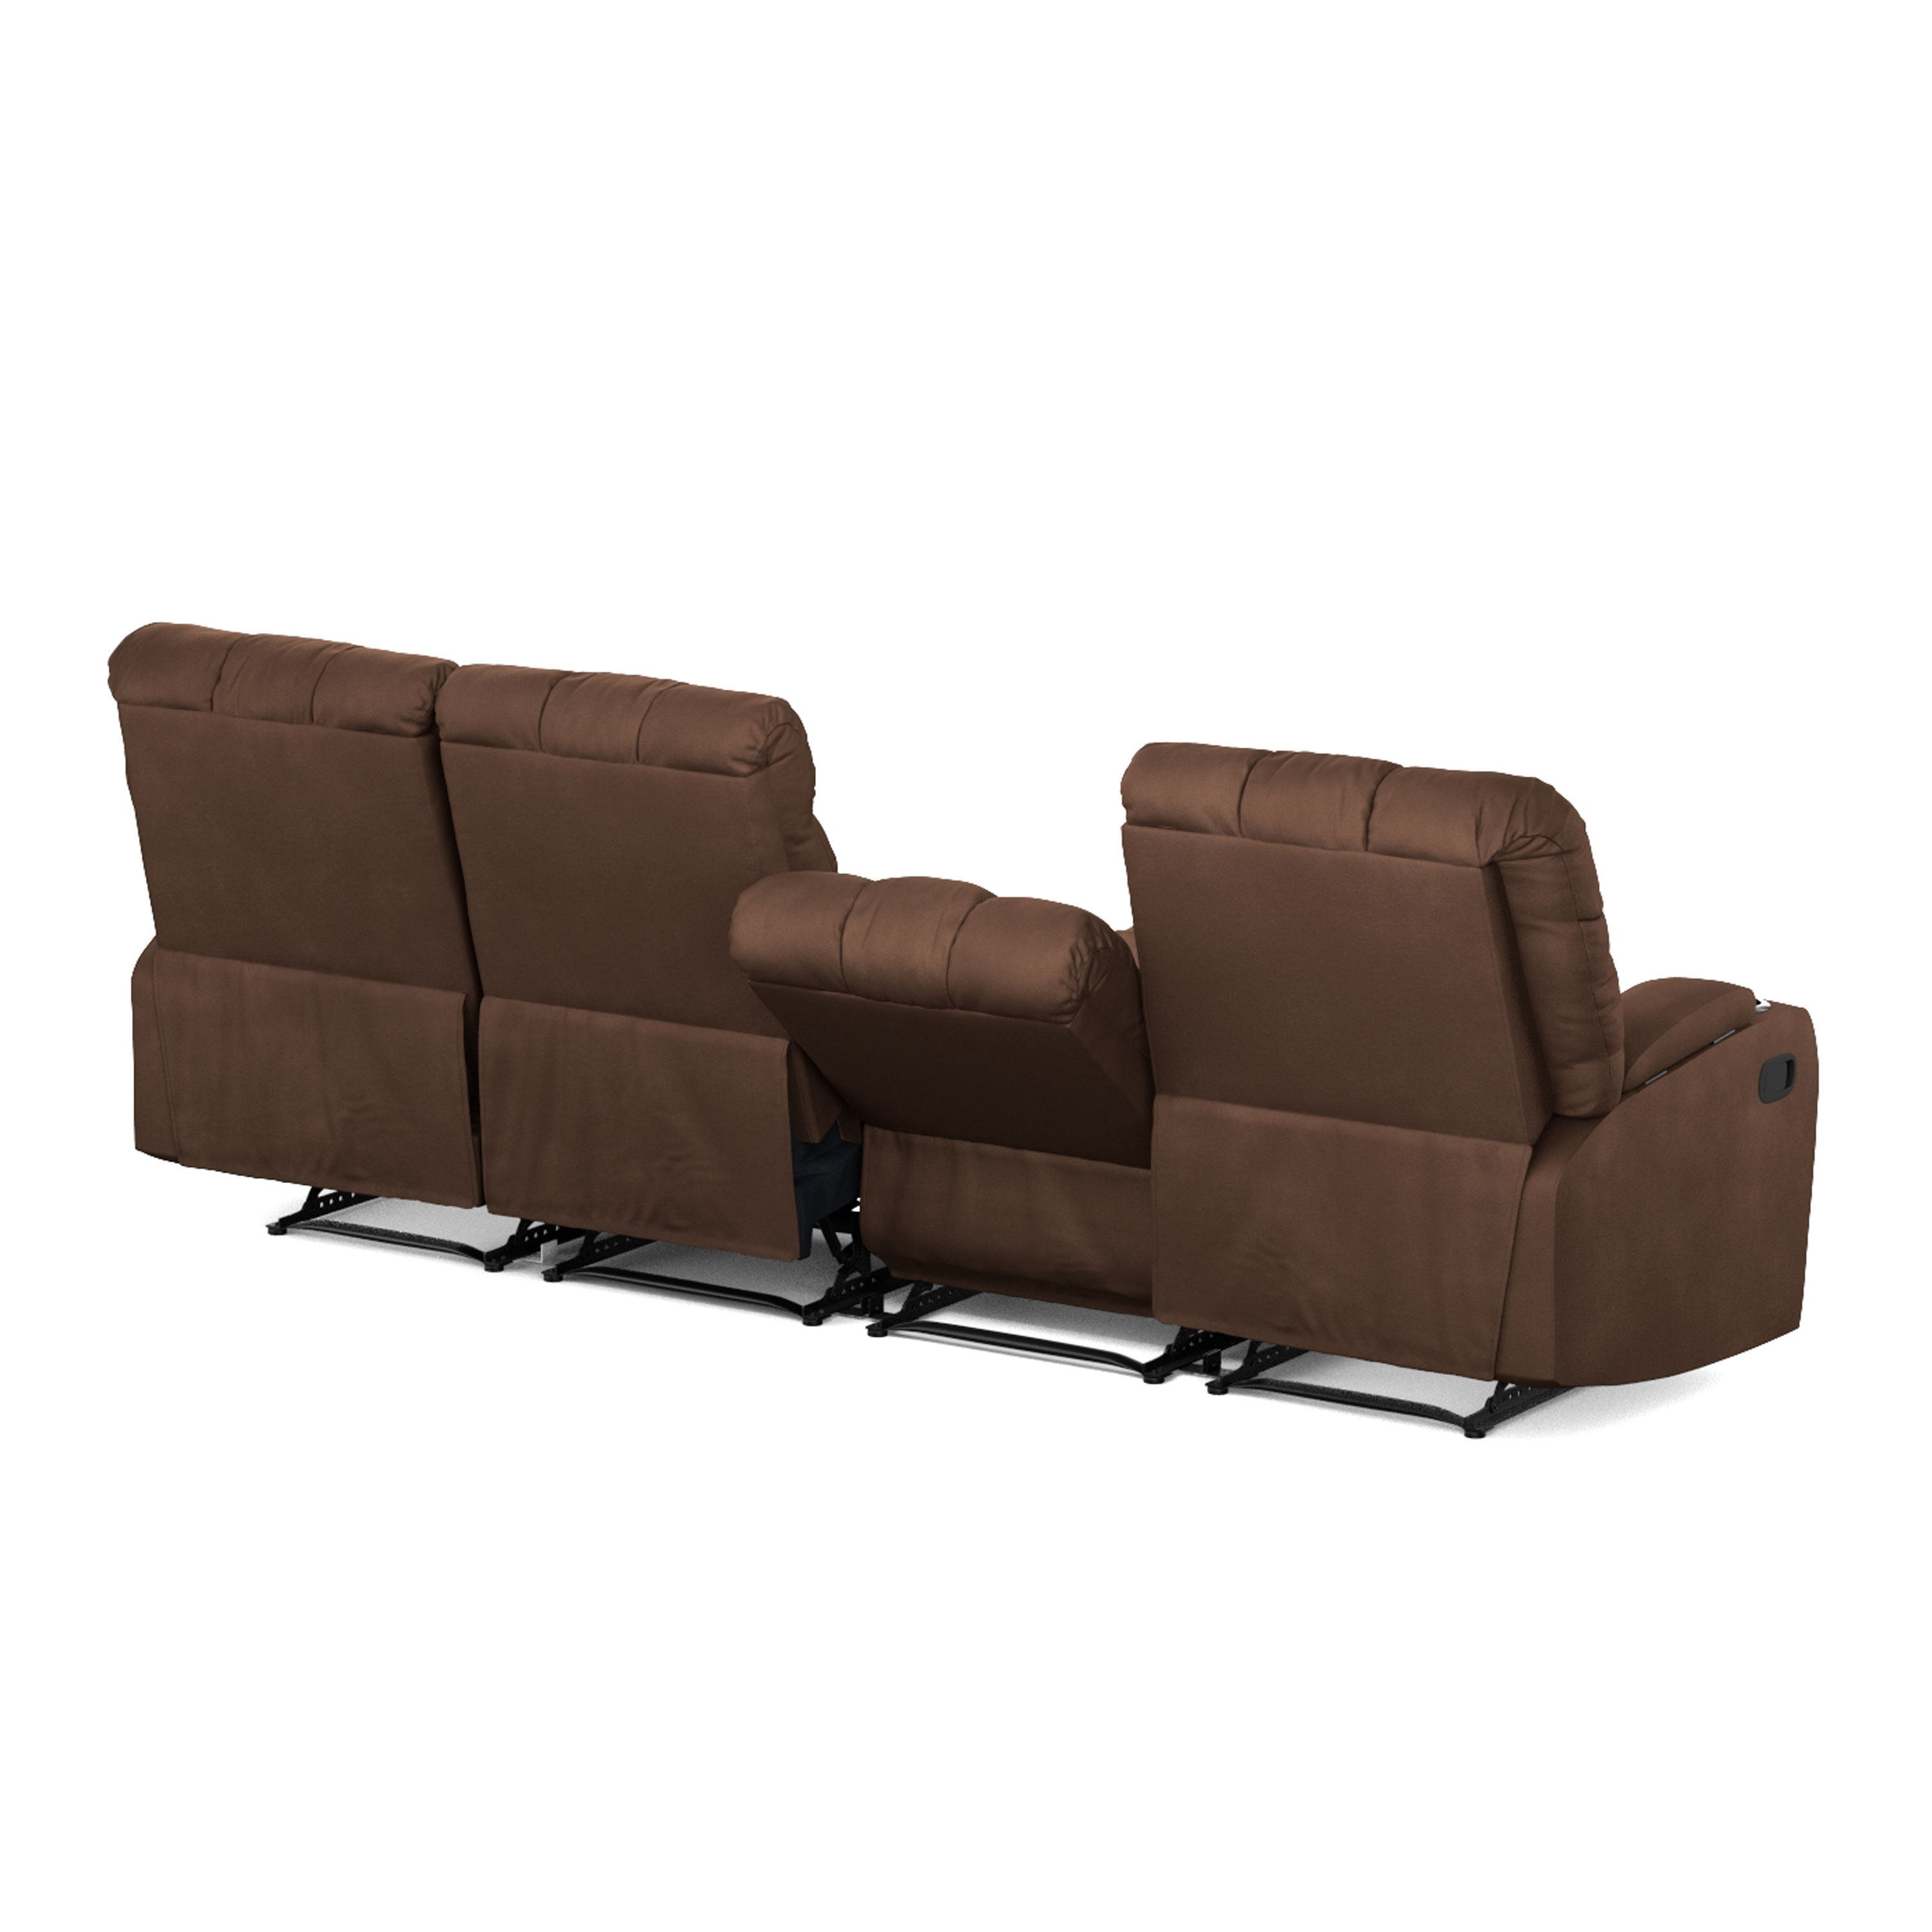 4 Seat Leather Reclining Sofa Lennox 4 Seat Reclining Sofa